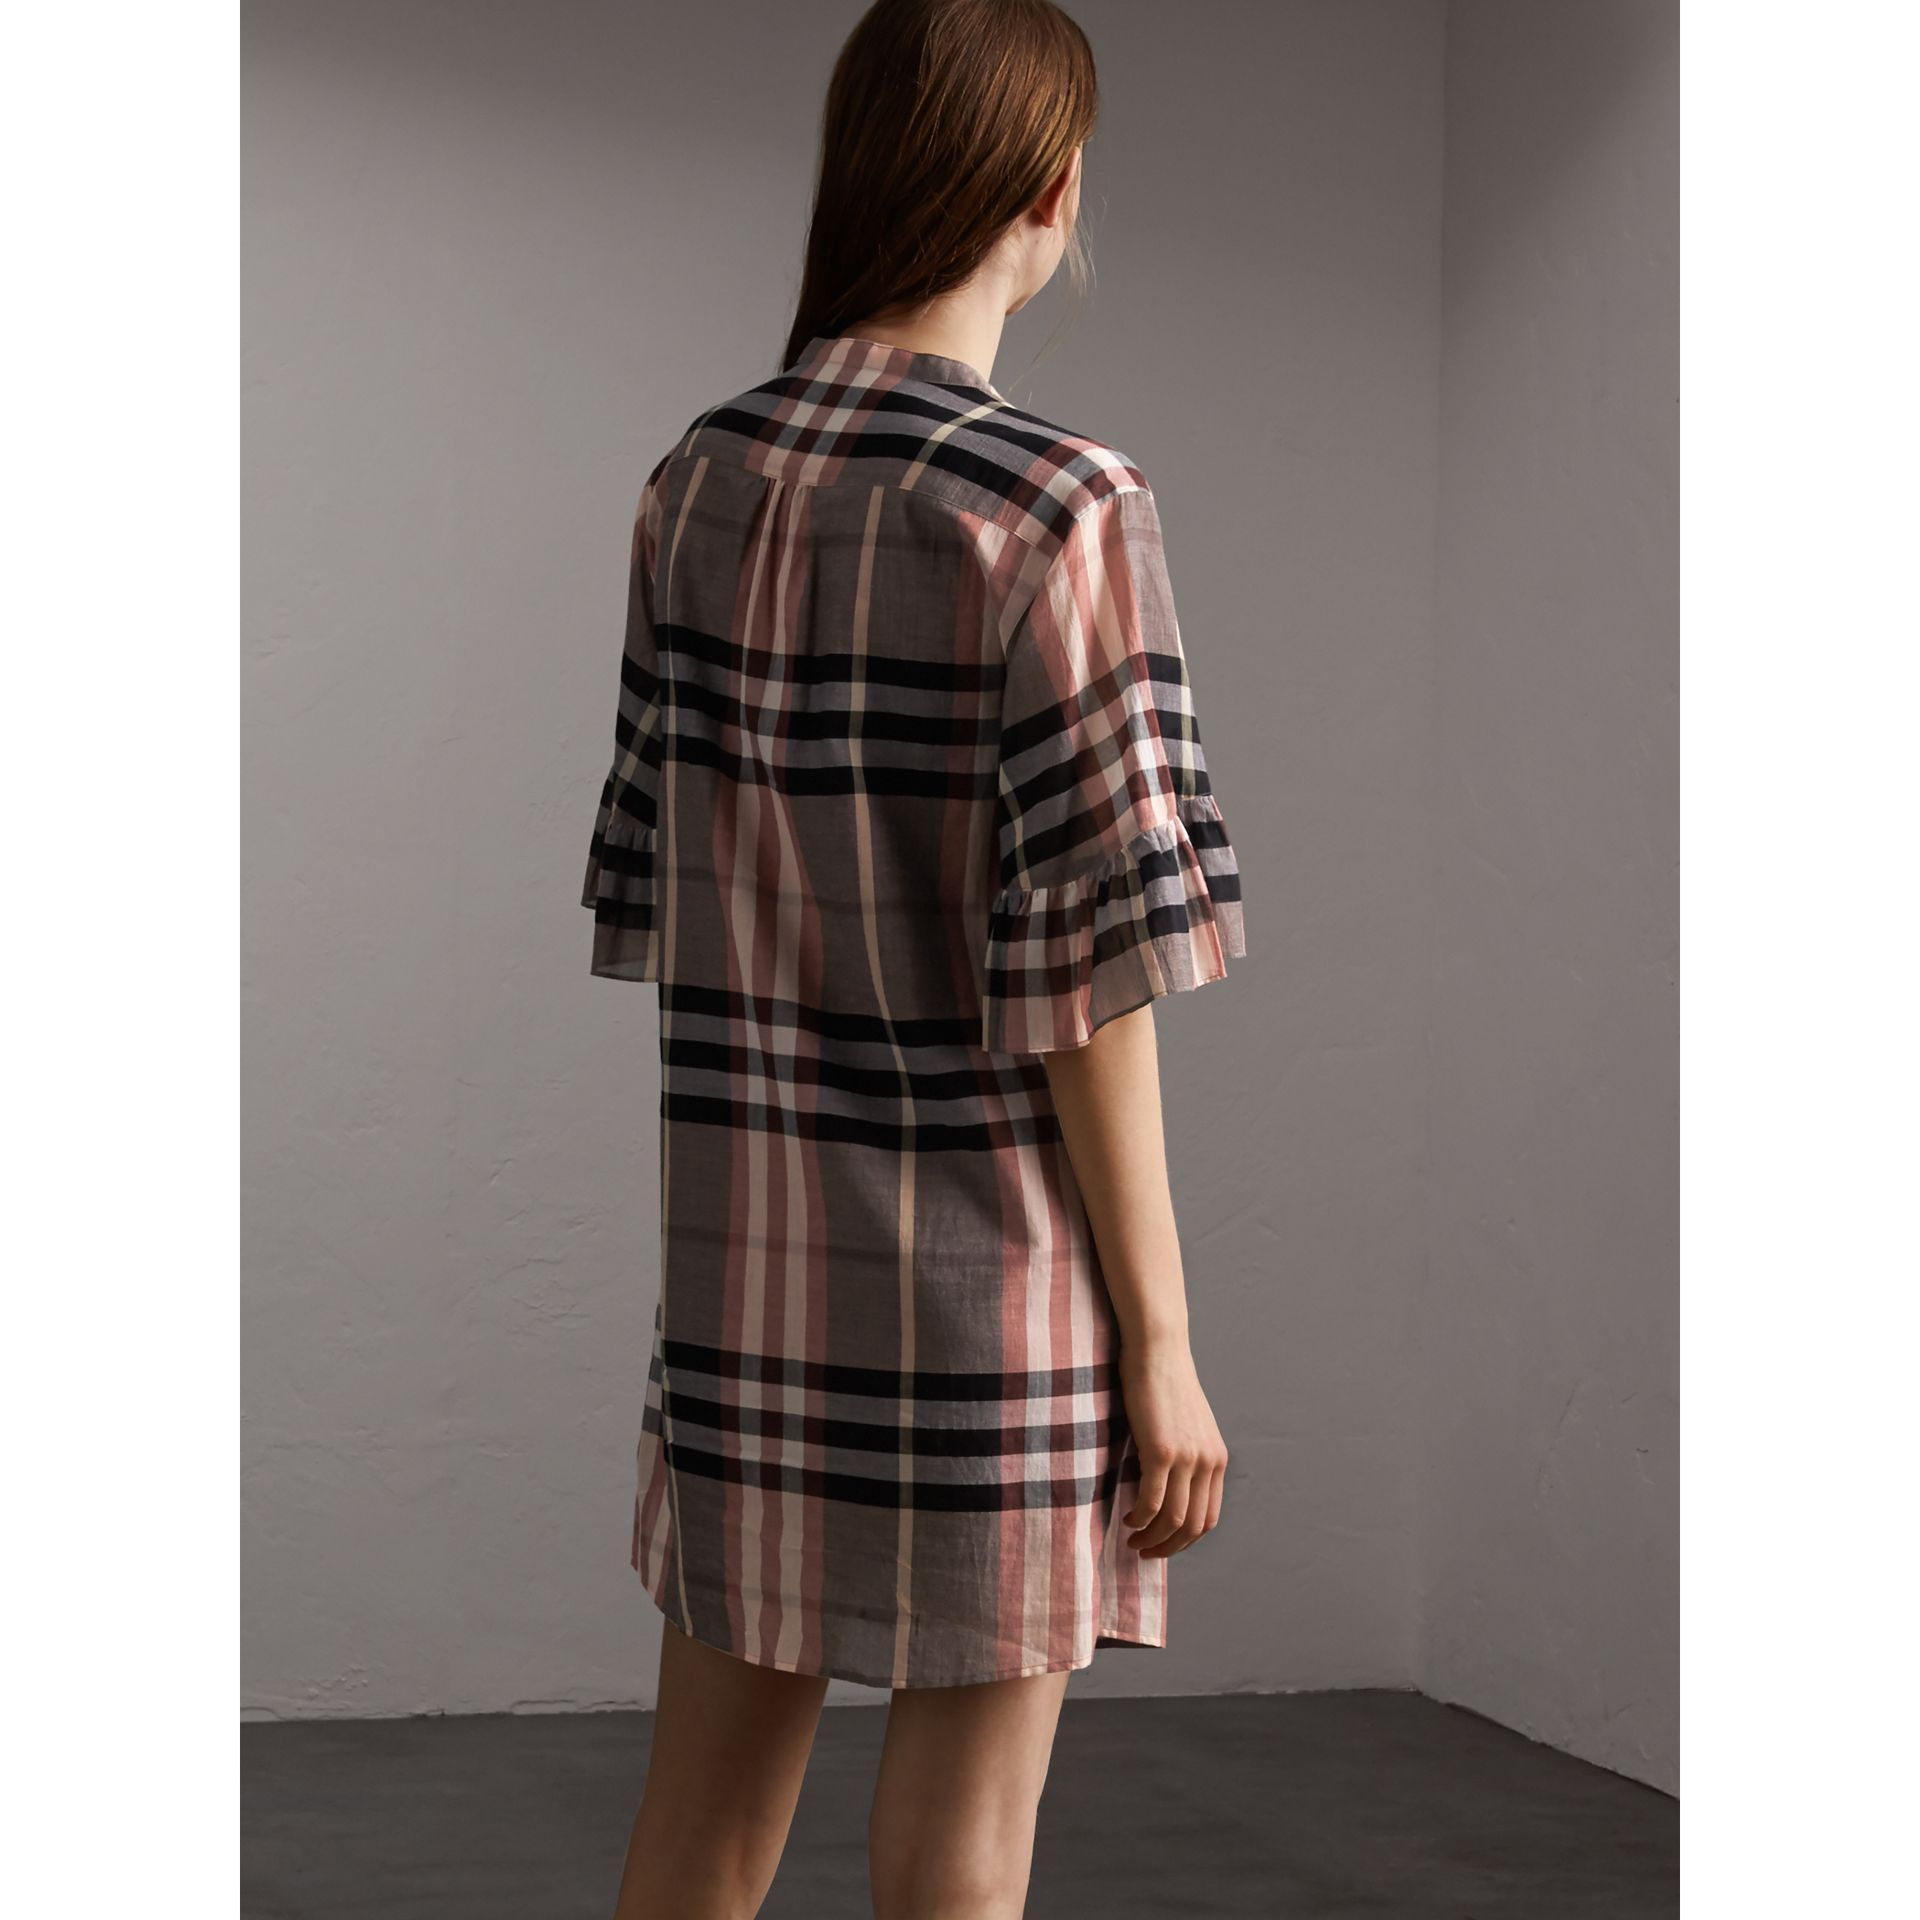 Ruffled Placket Check Cotton Dress in Dusty Pink - Women | Burberry - gallery image 3